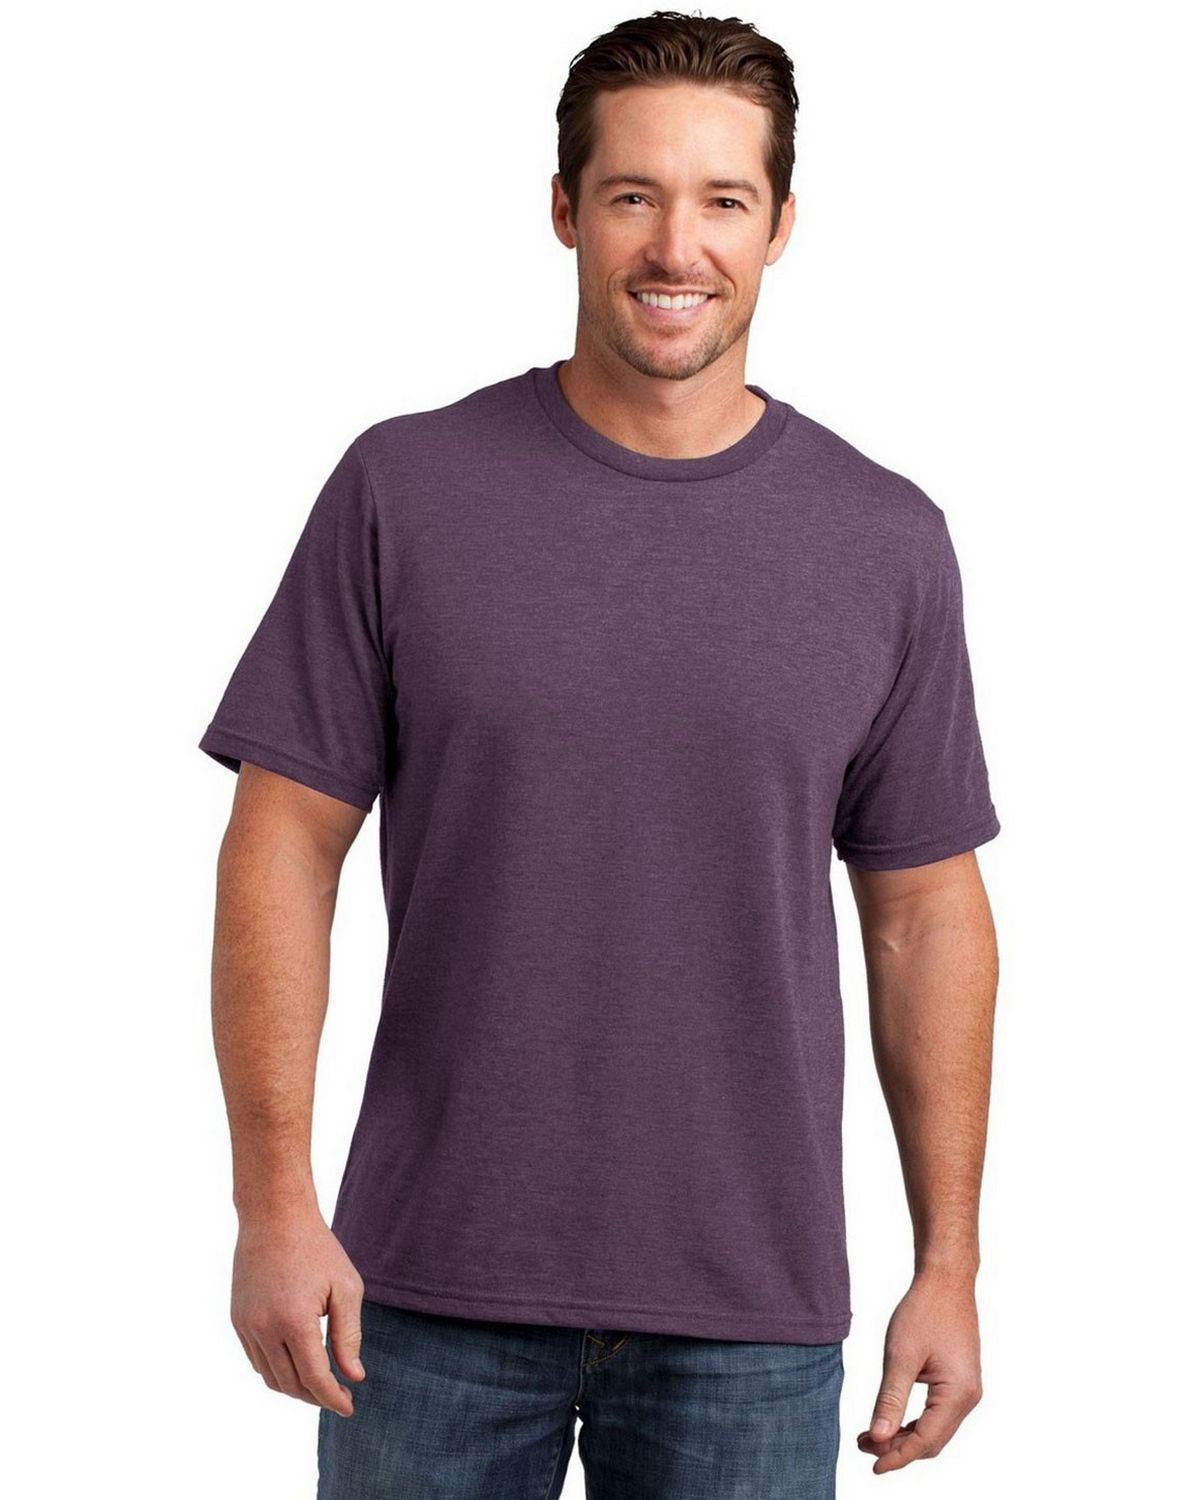 District DM108 Mens Perfect Blend Crew Tee